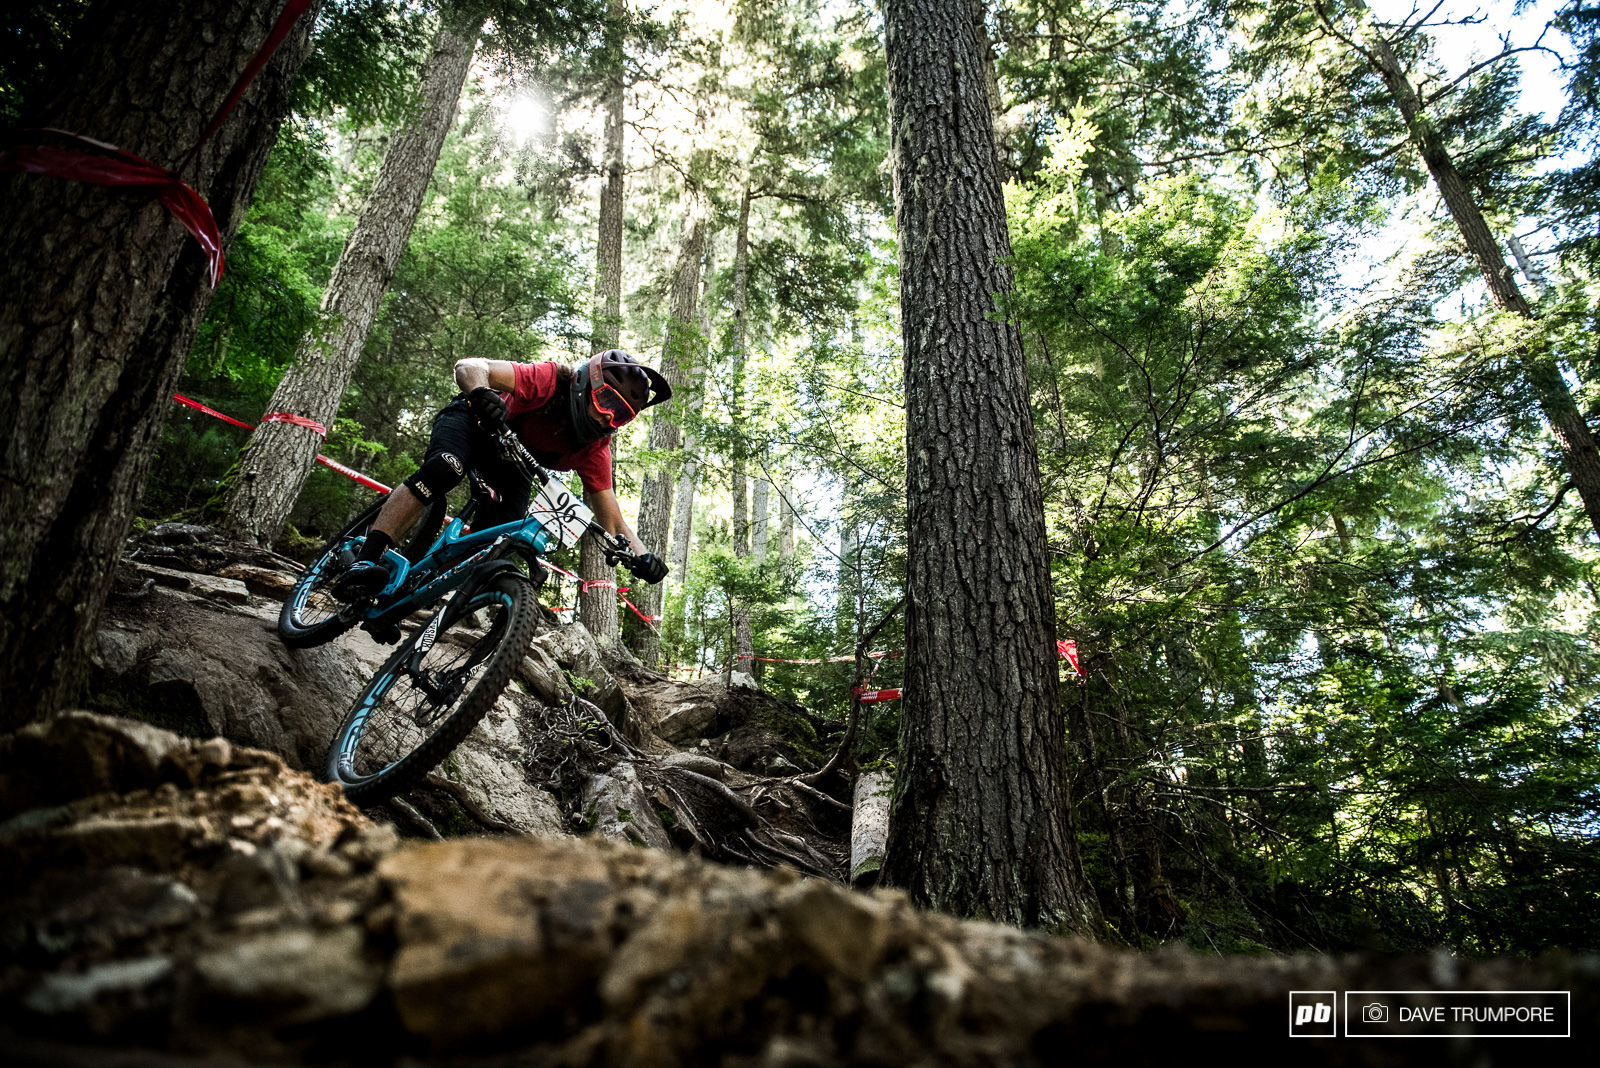 Aaron Bradford is back in EWS action once again after a bit of a hiatus that saw him focusing more on longer adventure style races.